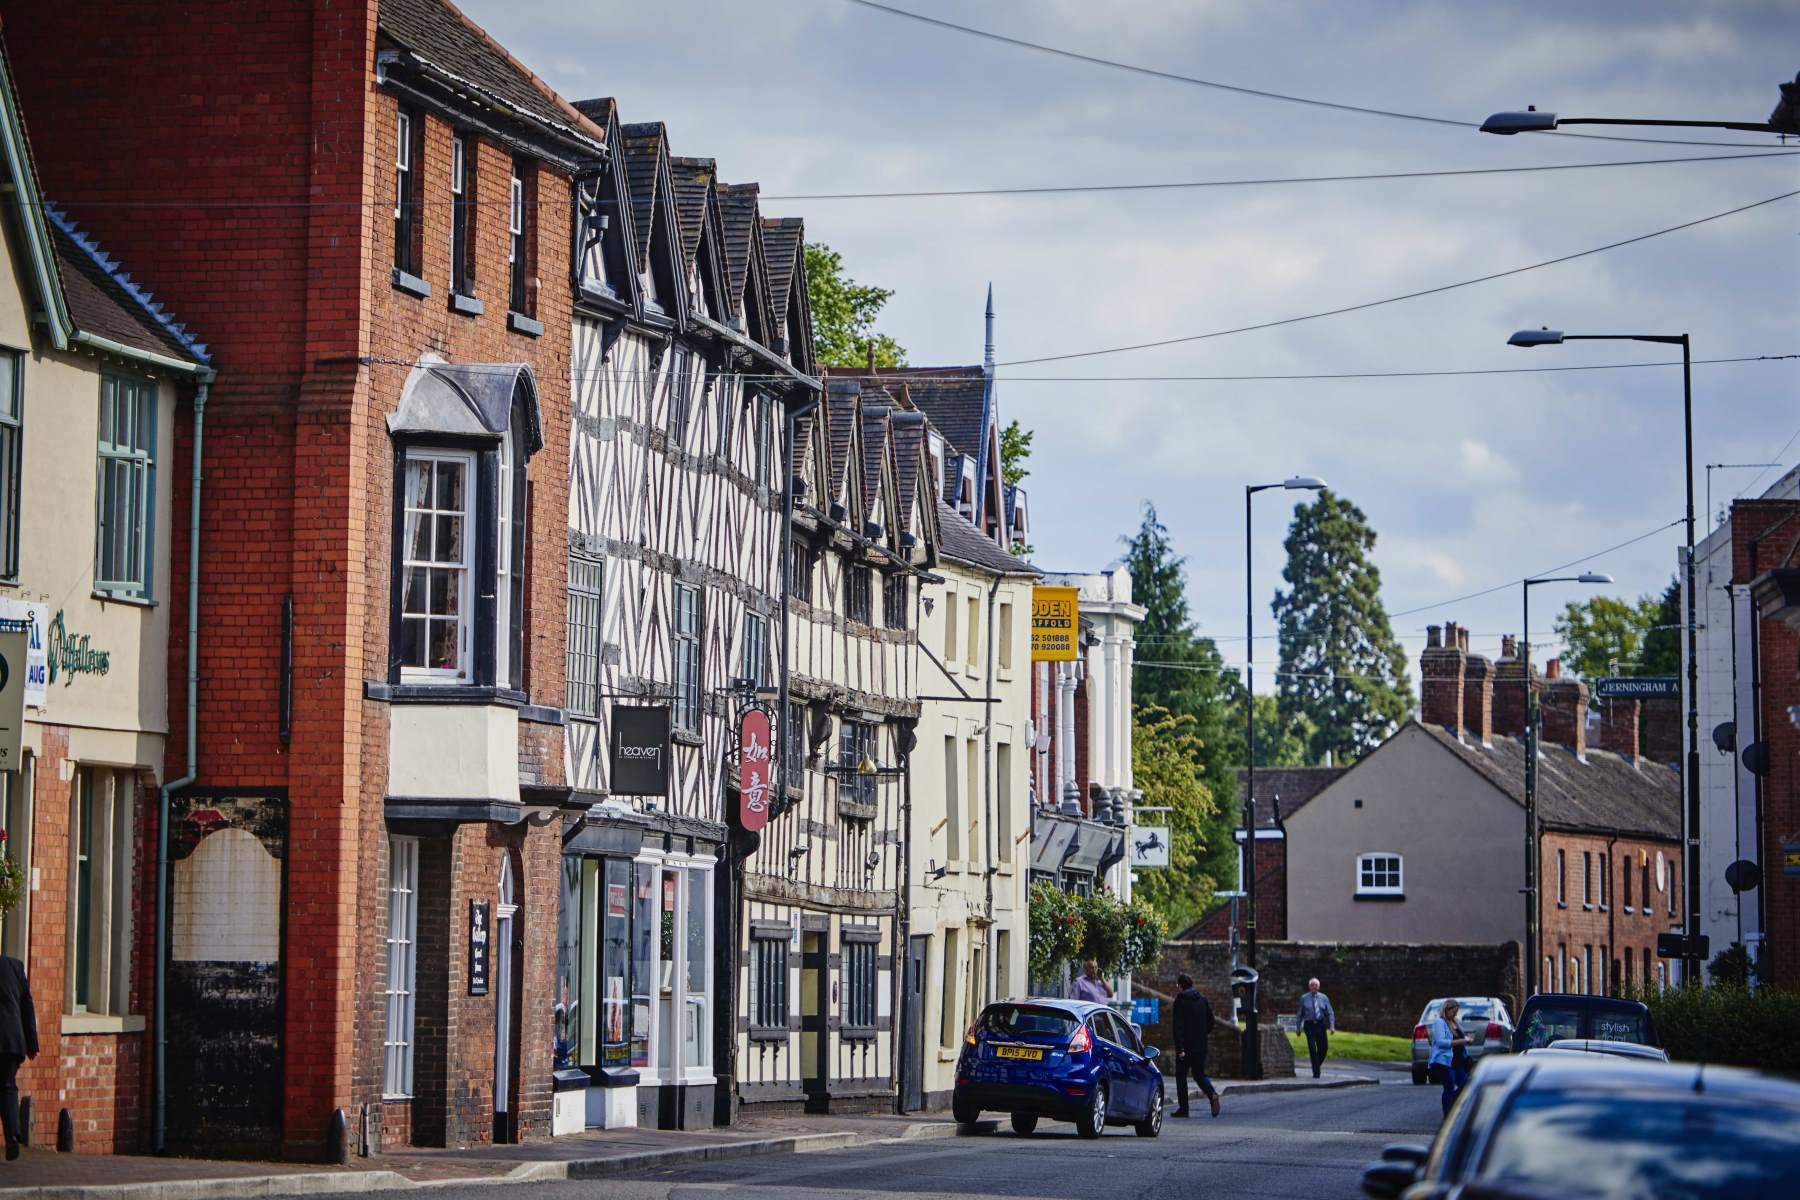 TWM_AreaPhotography_Shifnal_0030